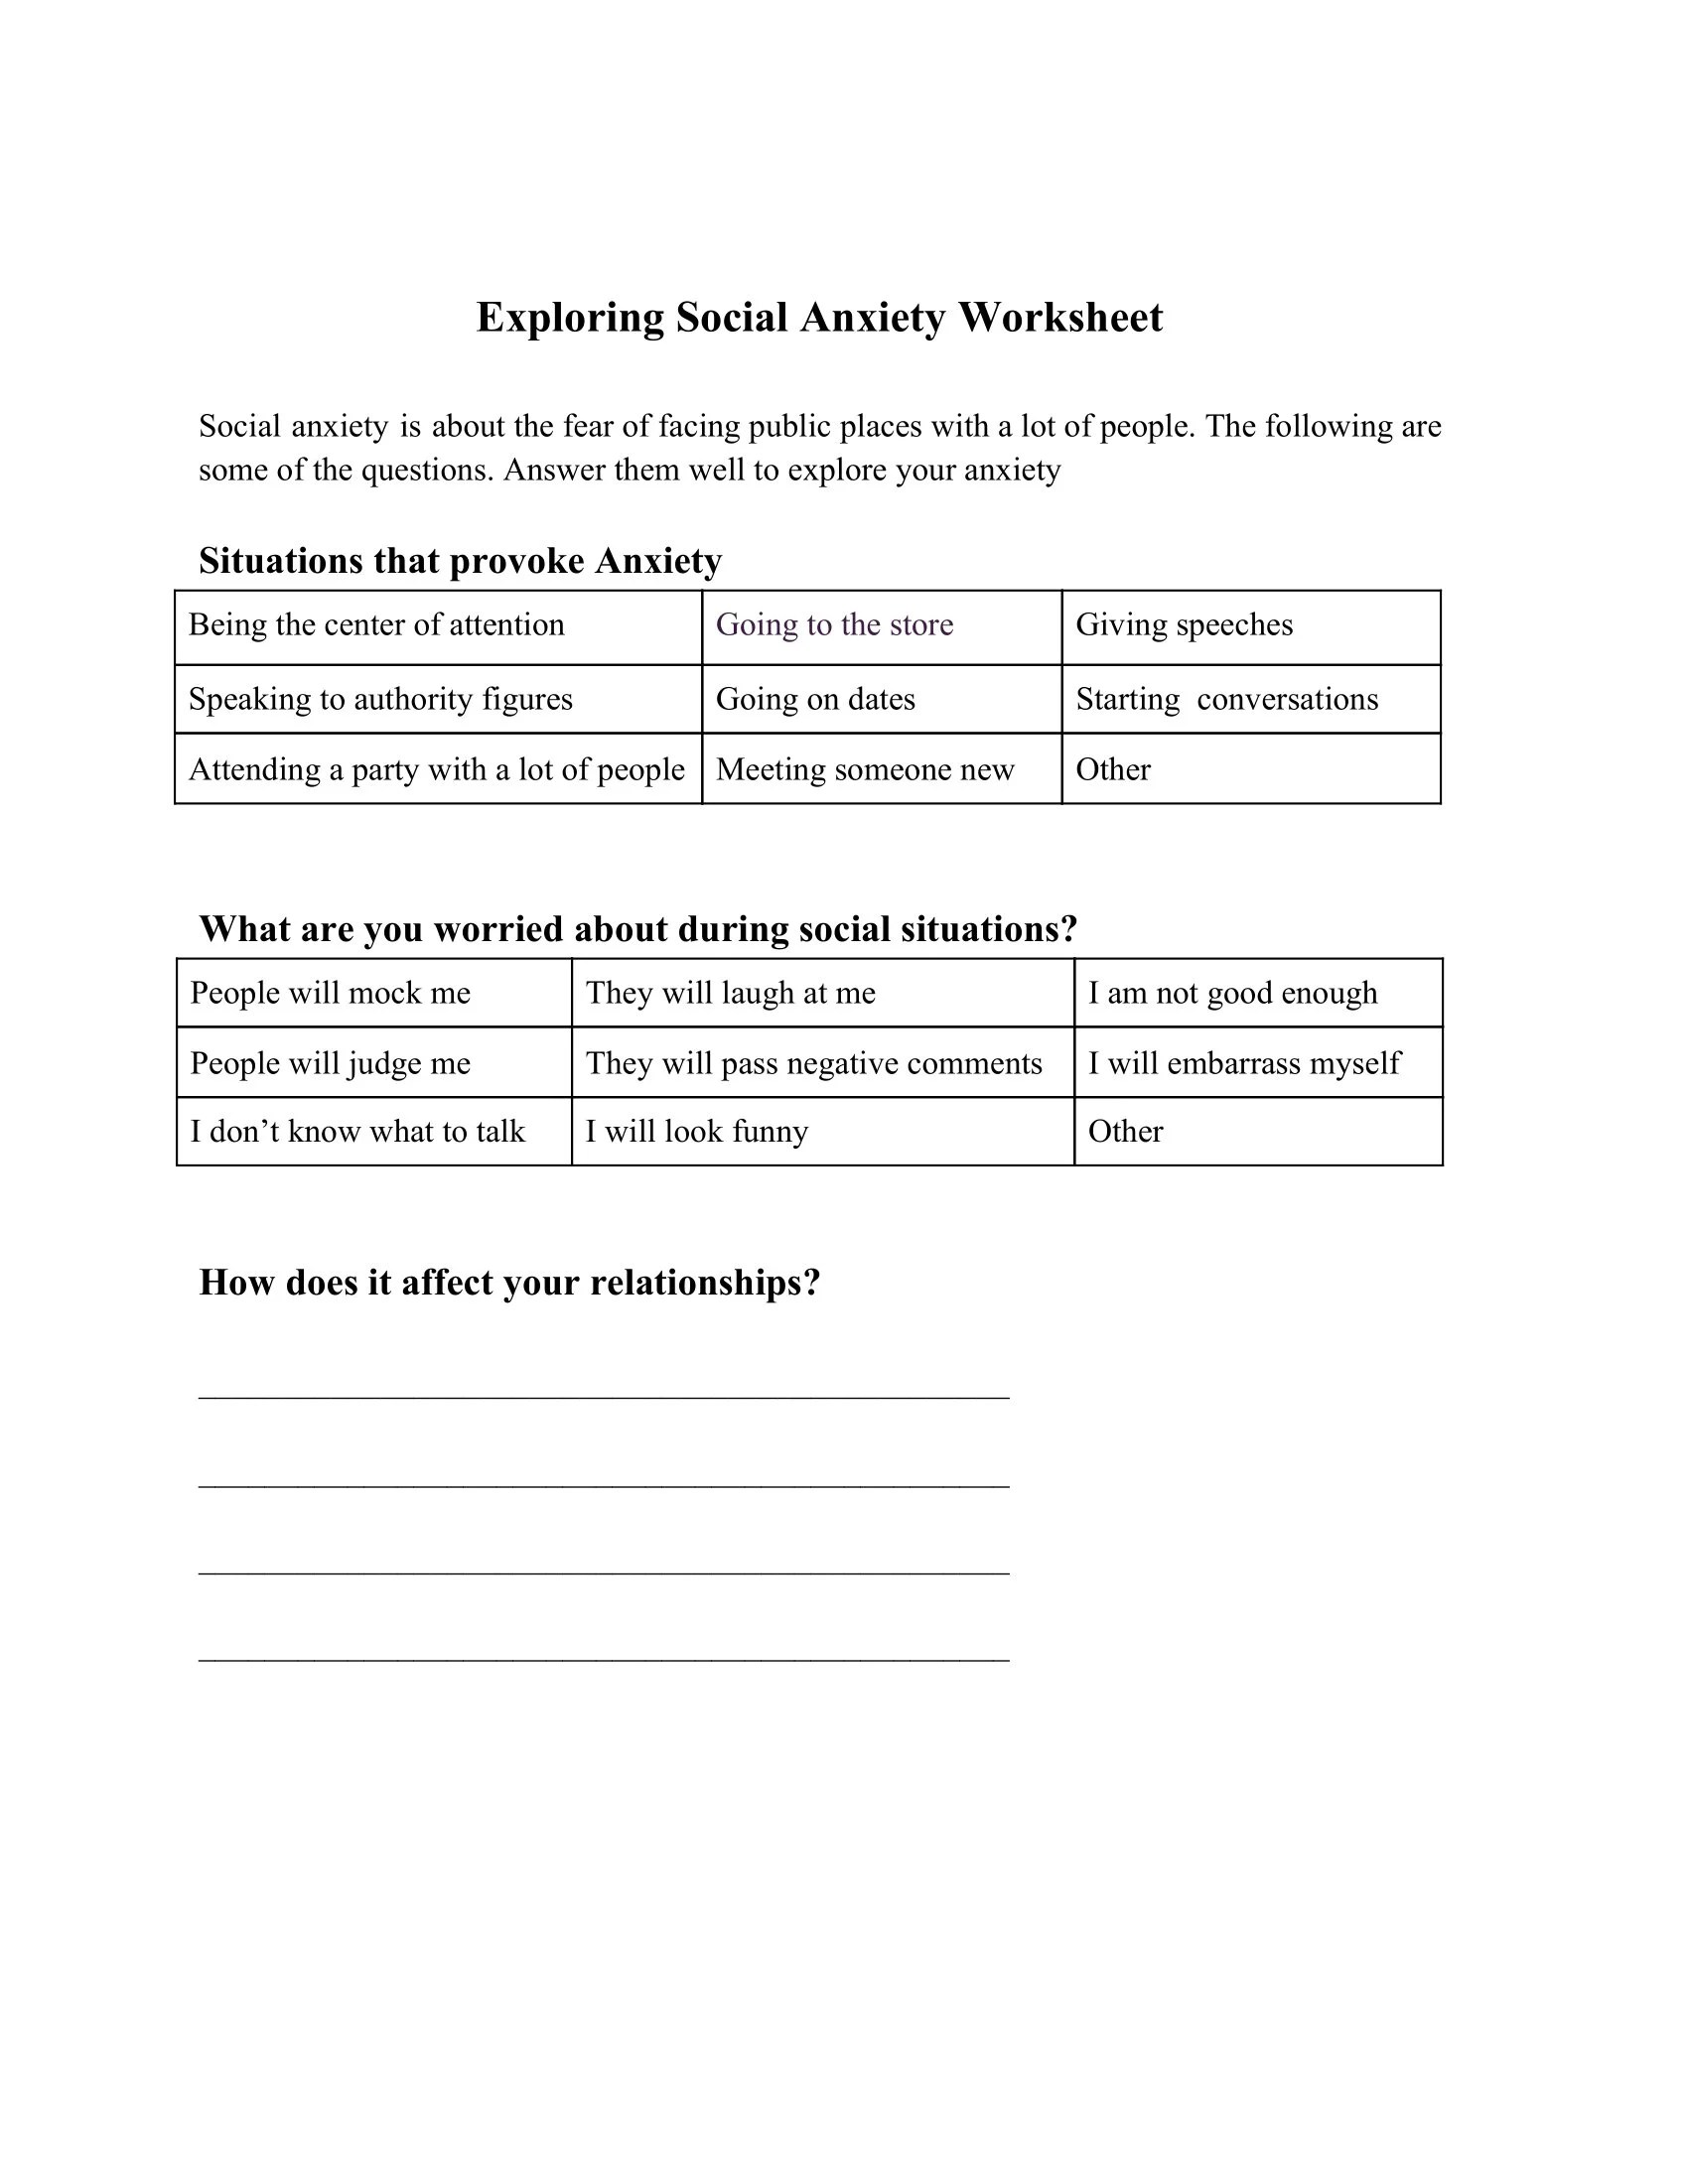 Exploring Social Anxiety Worksheet